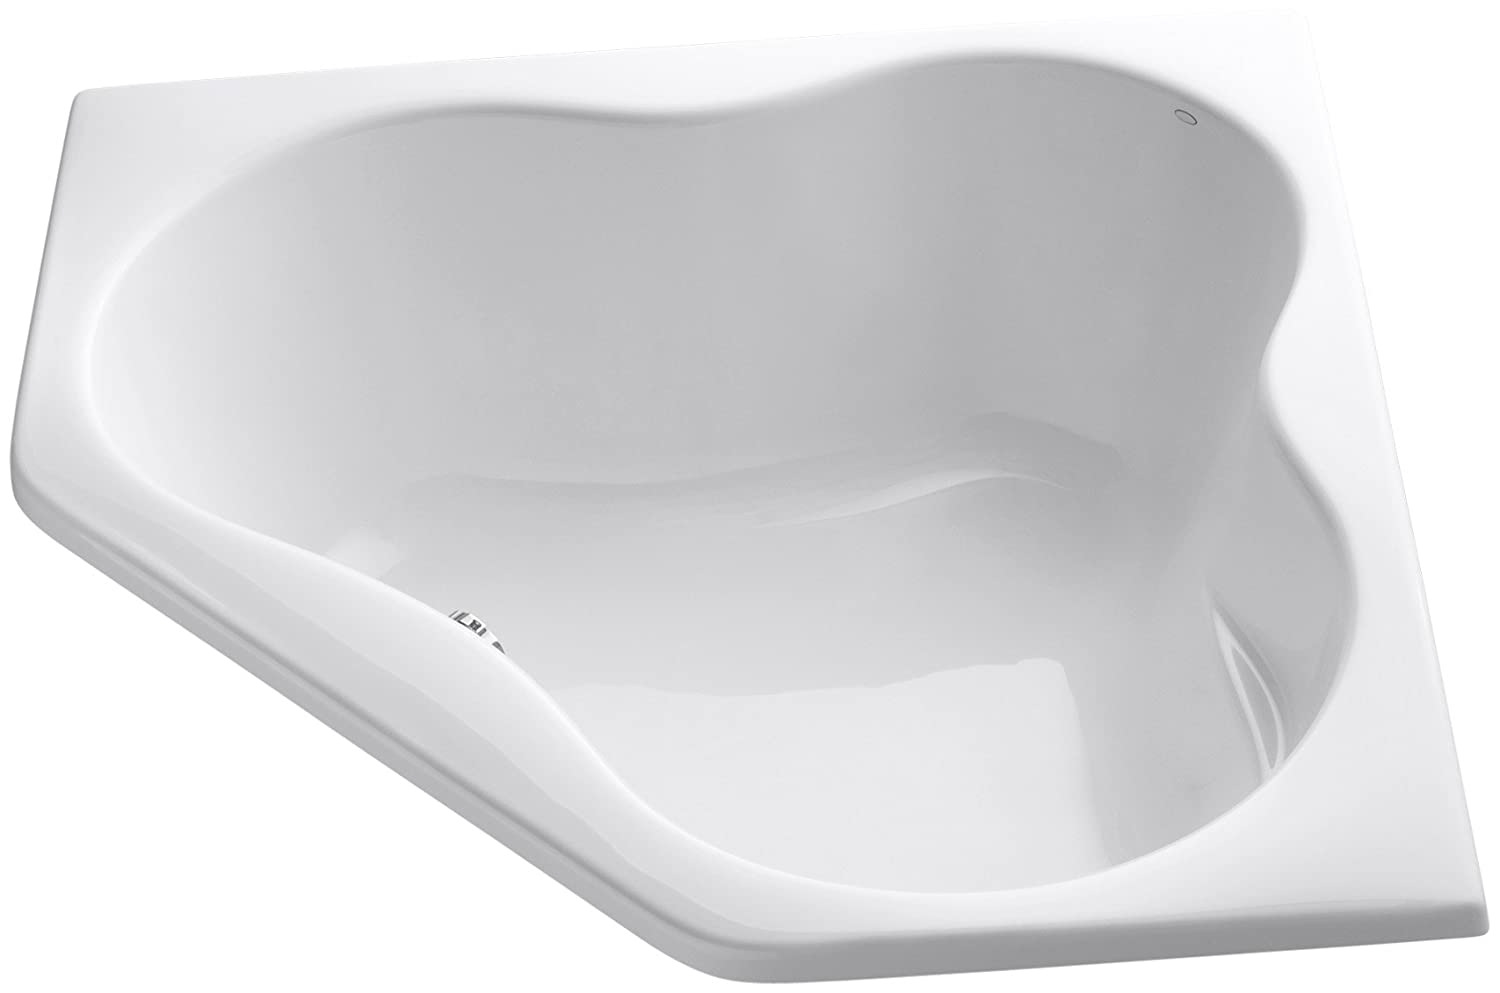 KOHLER K-1155-0 5454 Corner bath, White - Drop In Bathtubs - Amazon.com